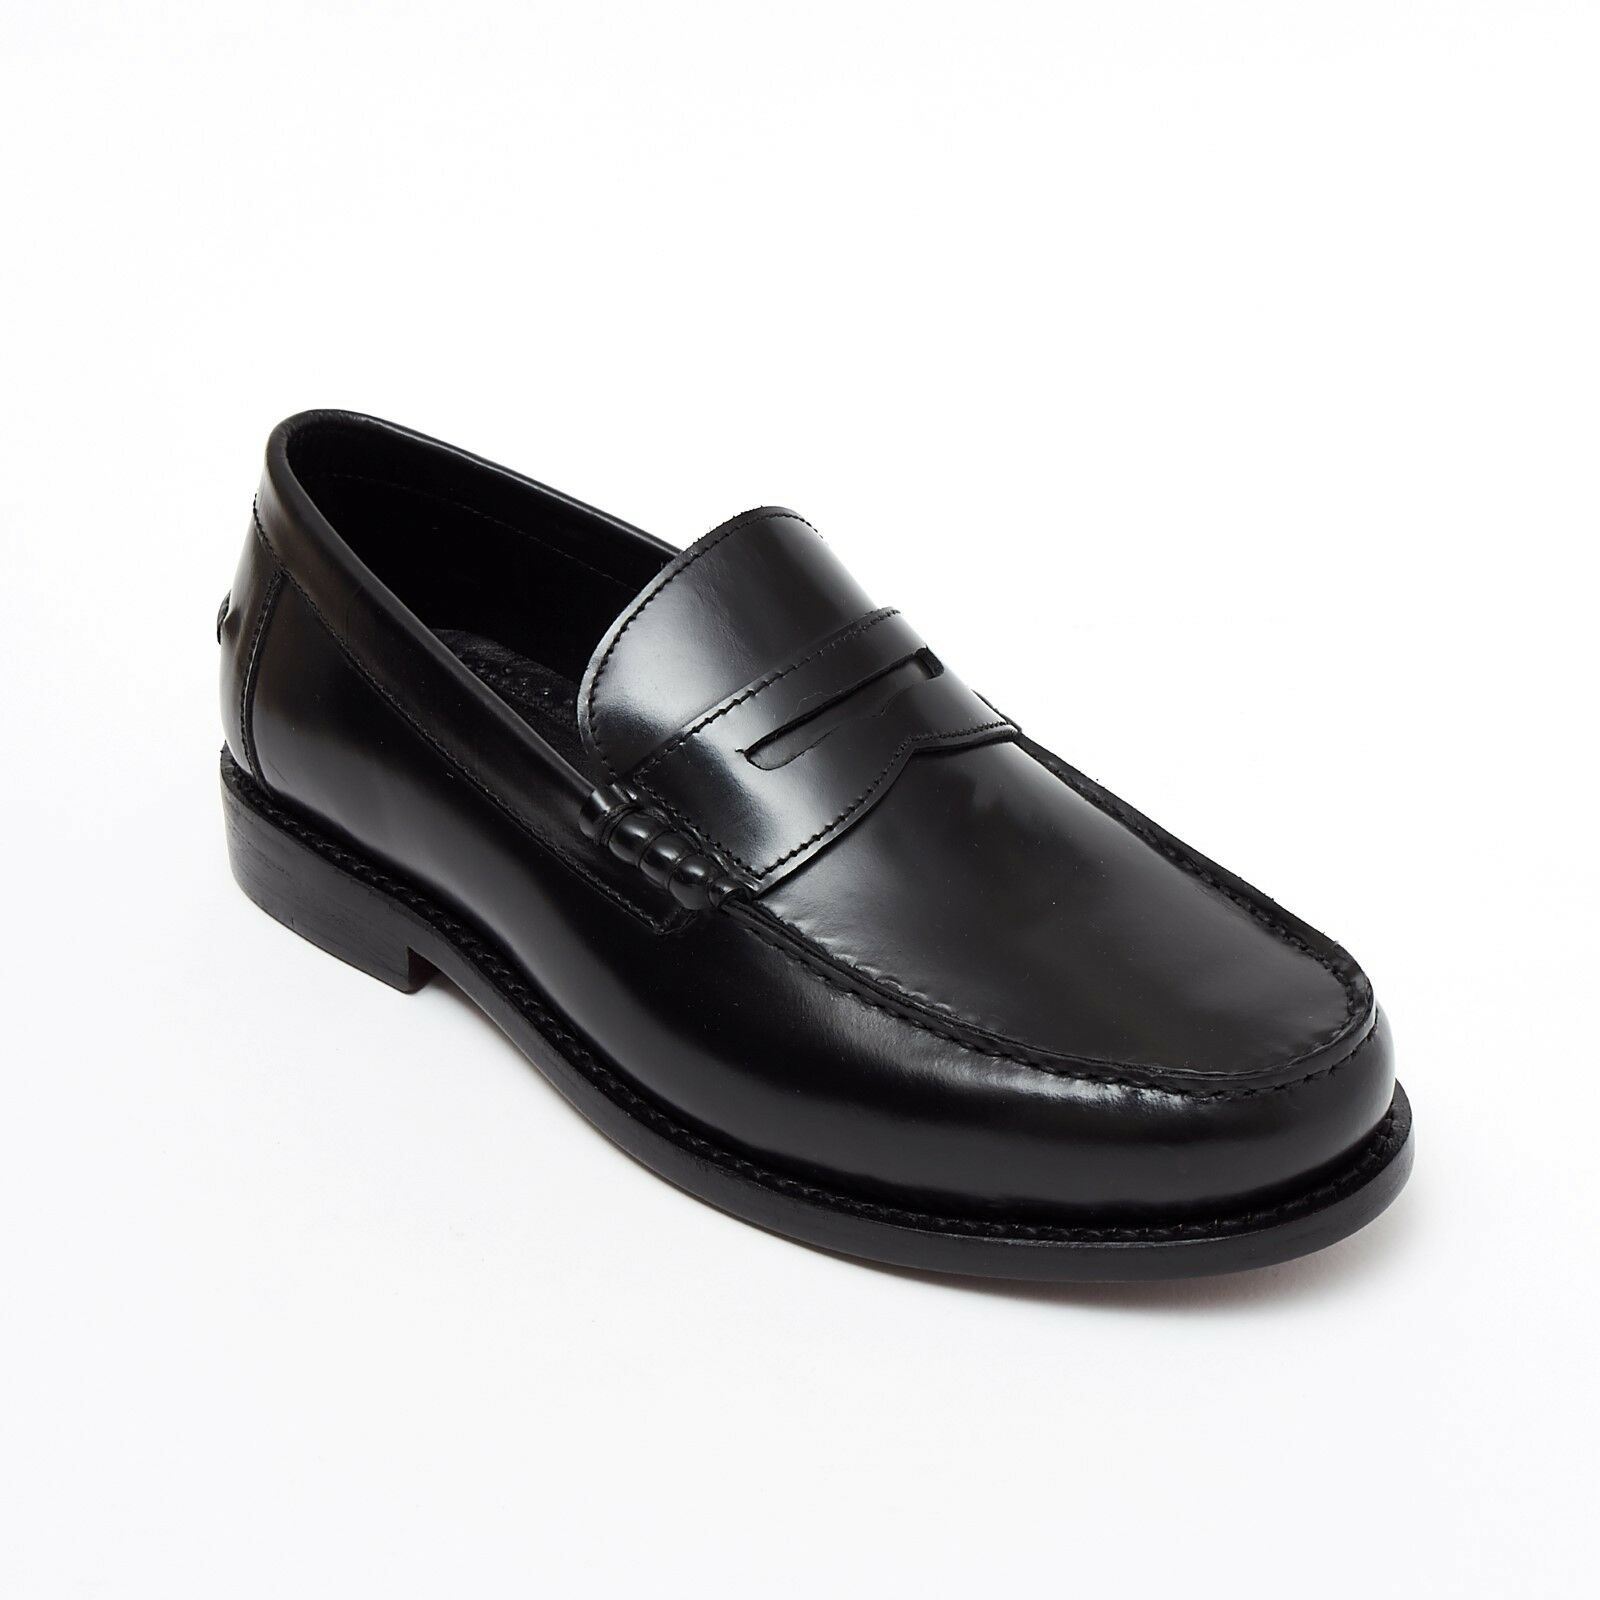 Lucini Formal Men Black Leather Moccasin Heels shoes Slip On Goodyear Welted